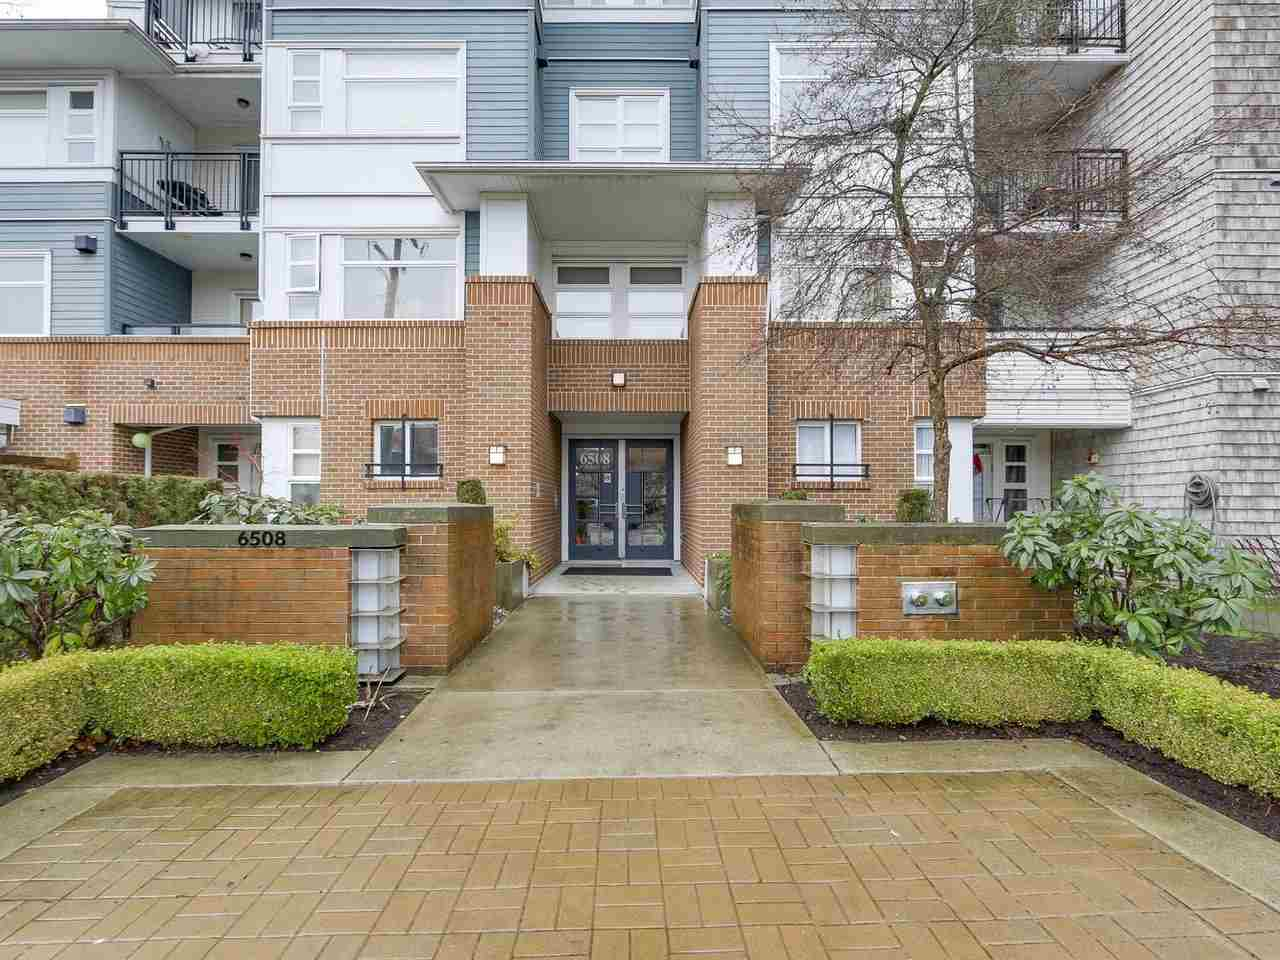 Main Photo: 206 6508 DENBIGH Avenue in Burnaby: Forest Glen BS Condo for sale (Burnaby South)  : MLS® # R2231512